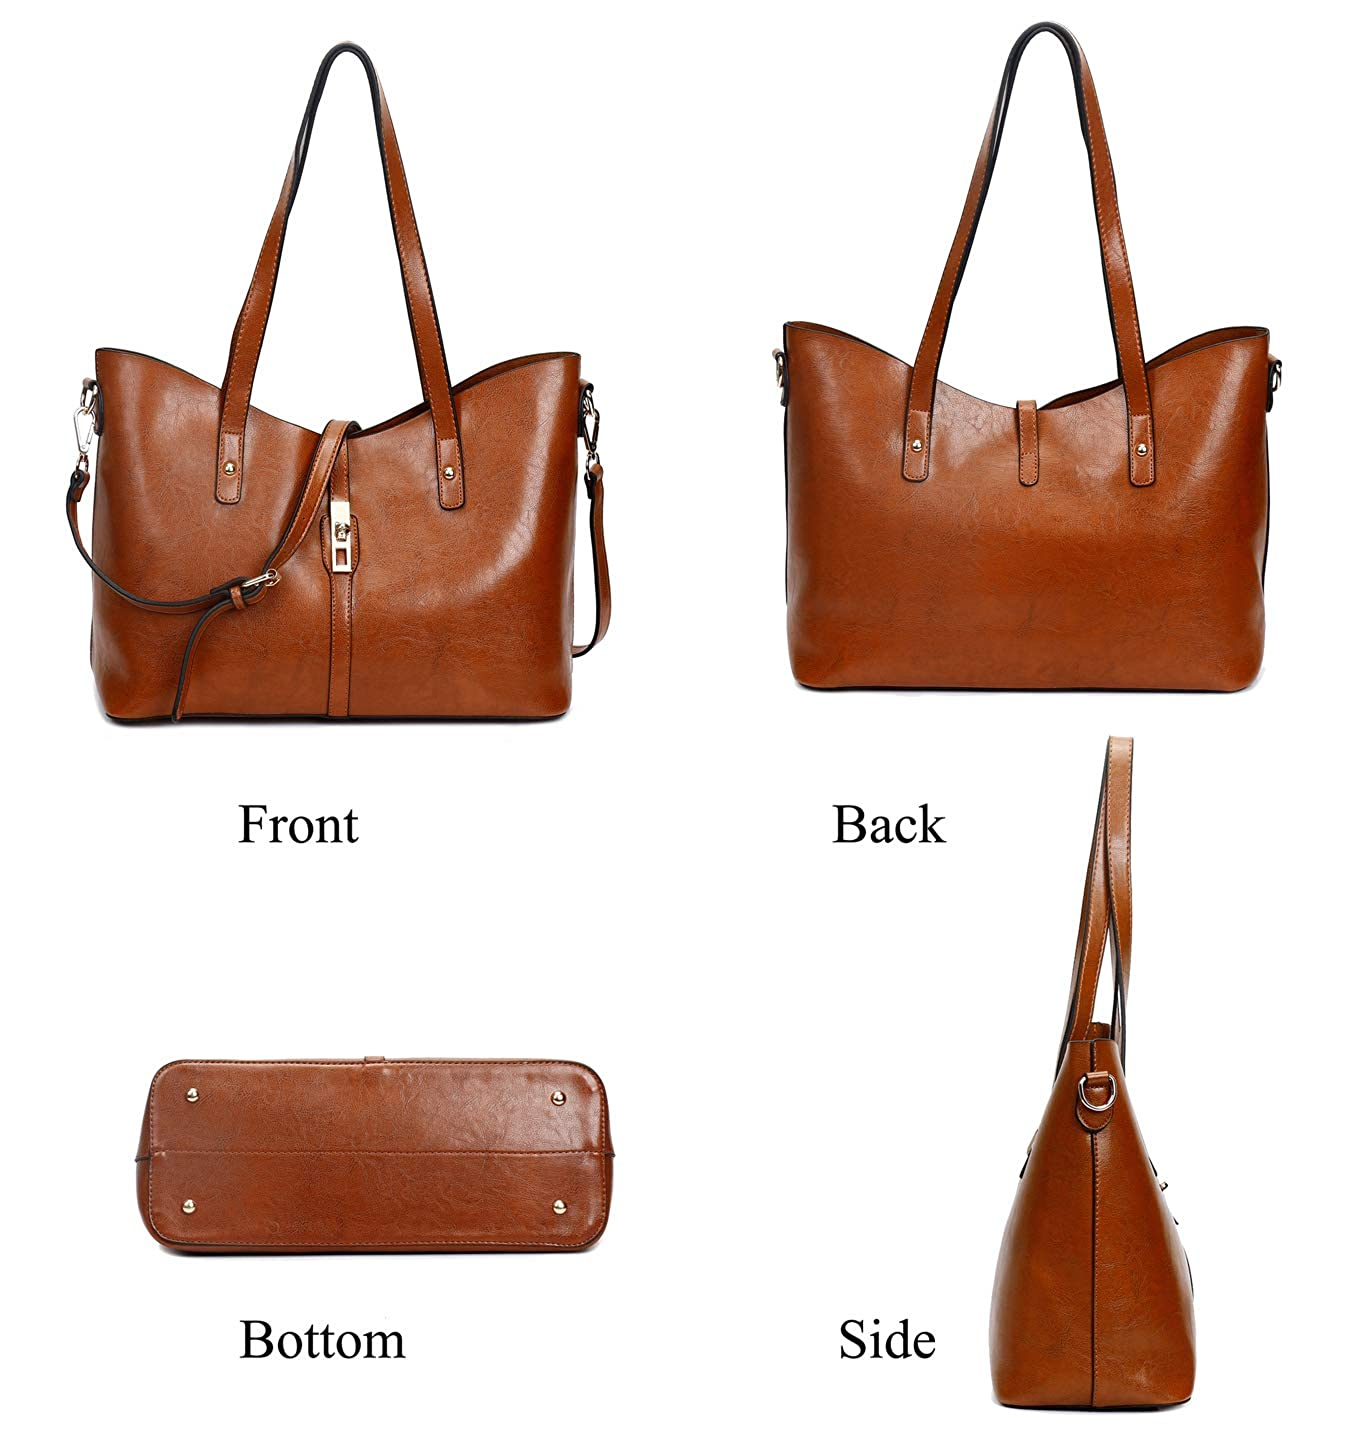 Large Purses Sets Handbags for Women Leather Tote Hobo Bags 4pcs